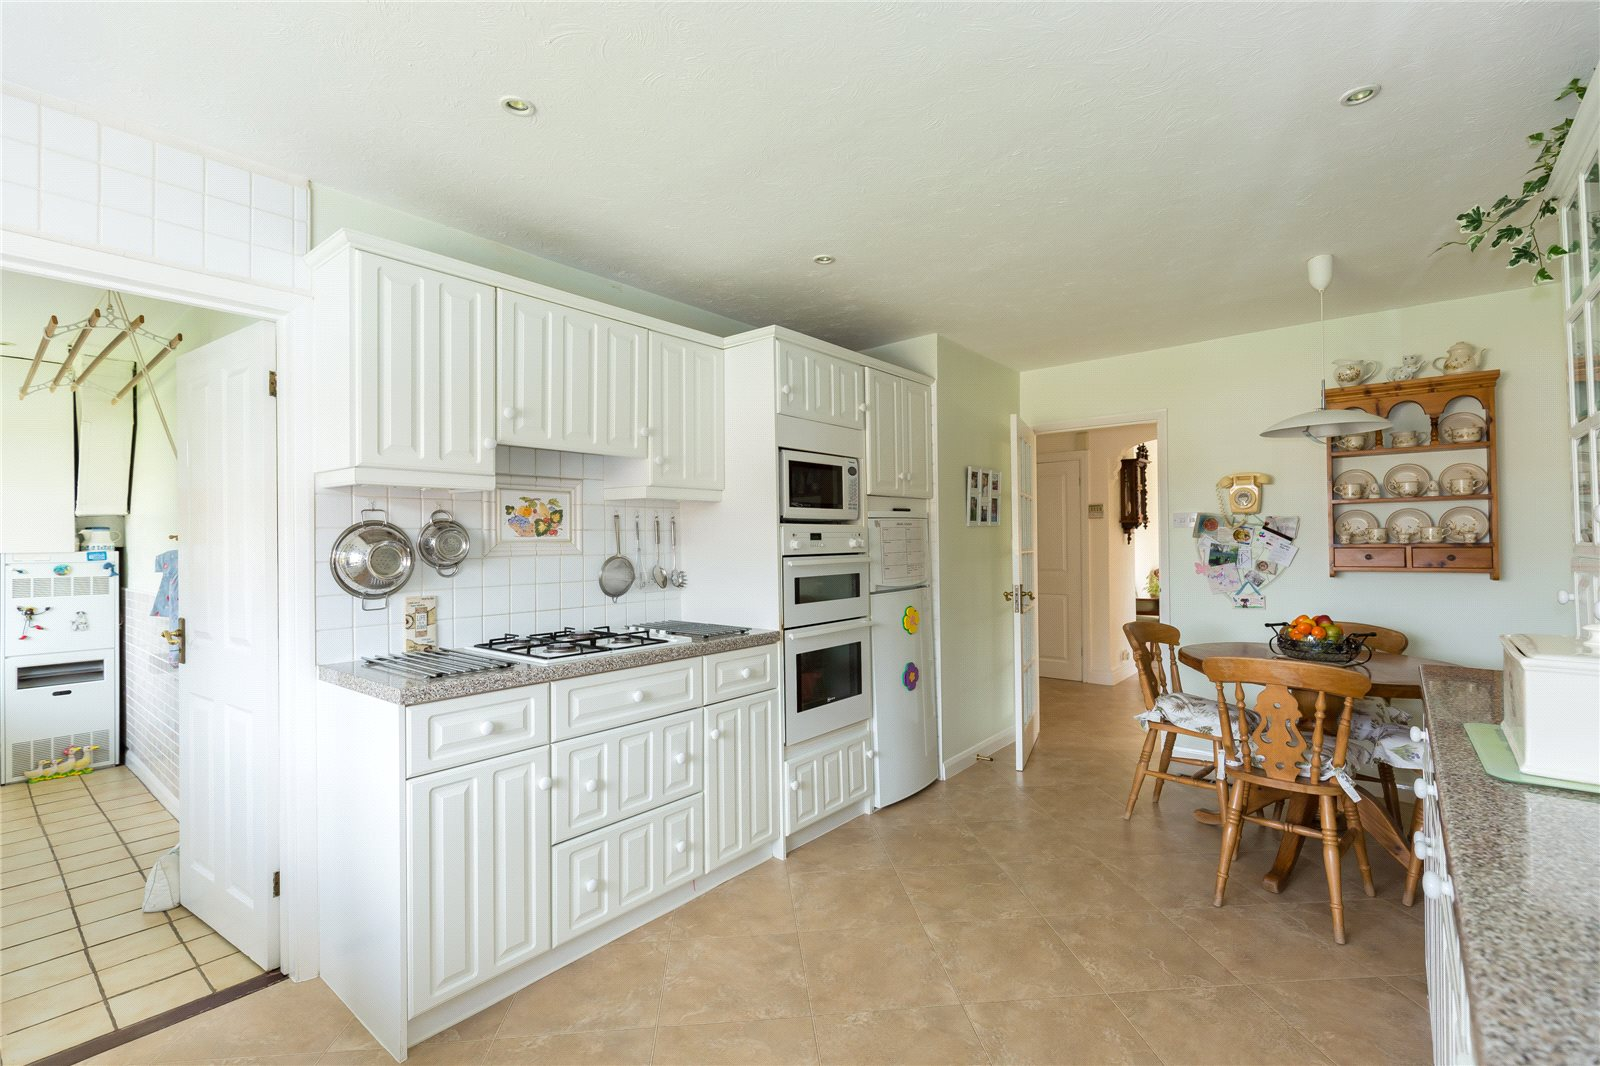 Additional photo for property listing at Denham Lane, Chalfont St Peter, Buckinghamshire, SL9 Chalfont St Peter, Angleterre